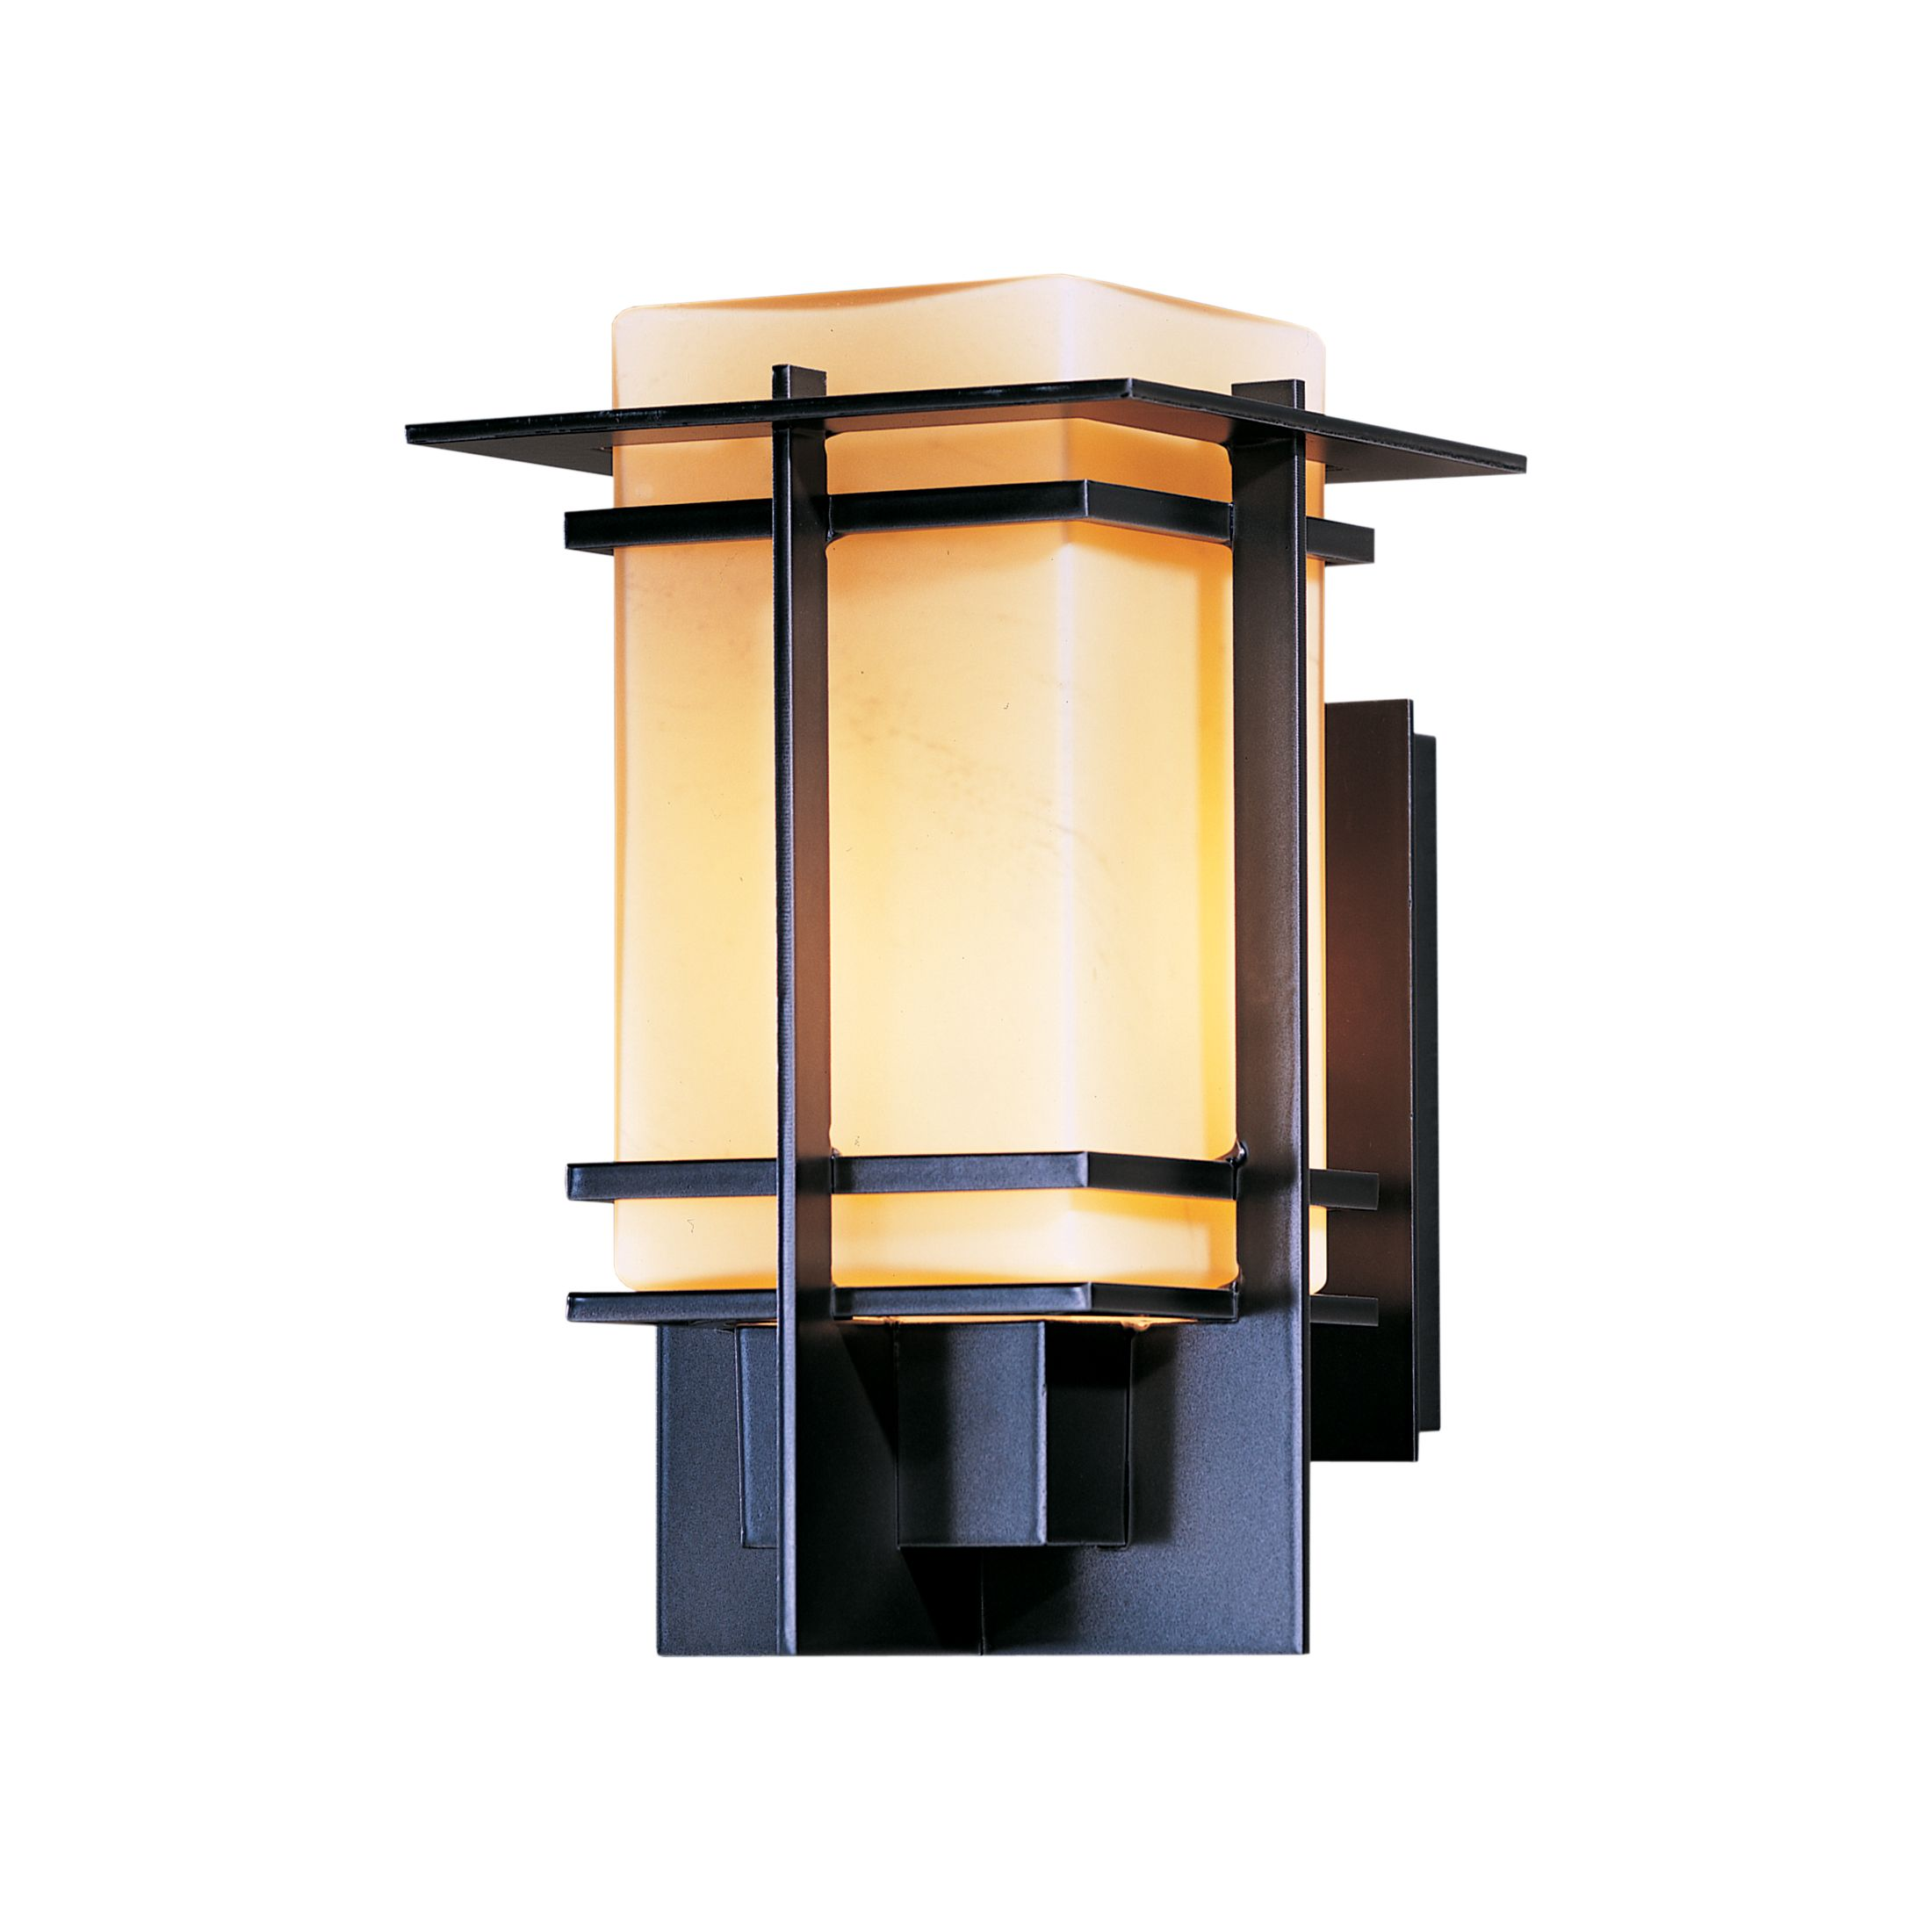 Tourou small outdoor sconce hubbardton forge product detail tourou small outdoor sconce amipublicfo Gallery